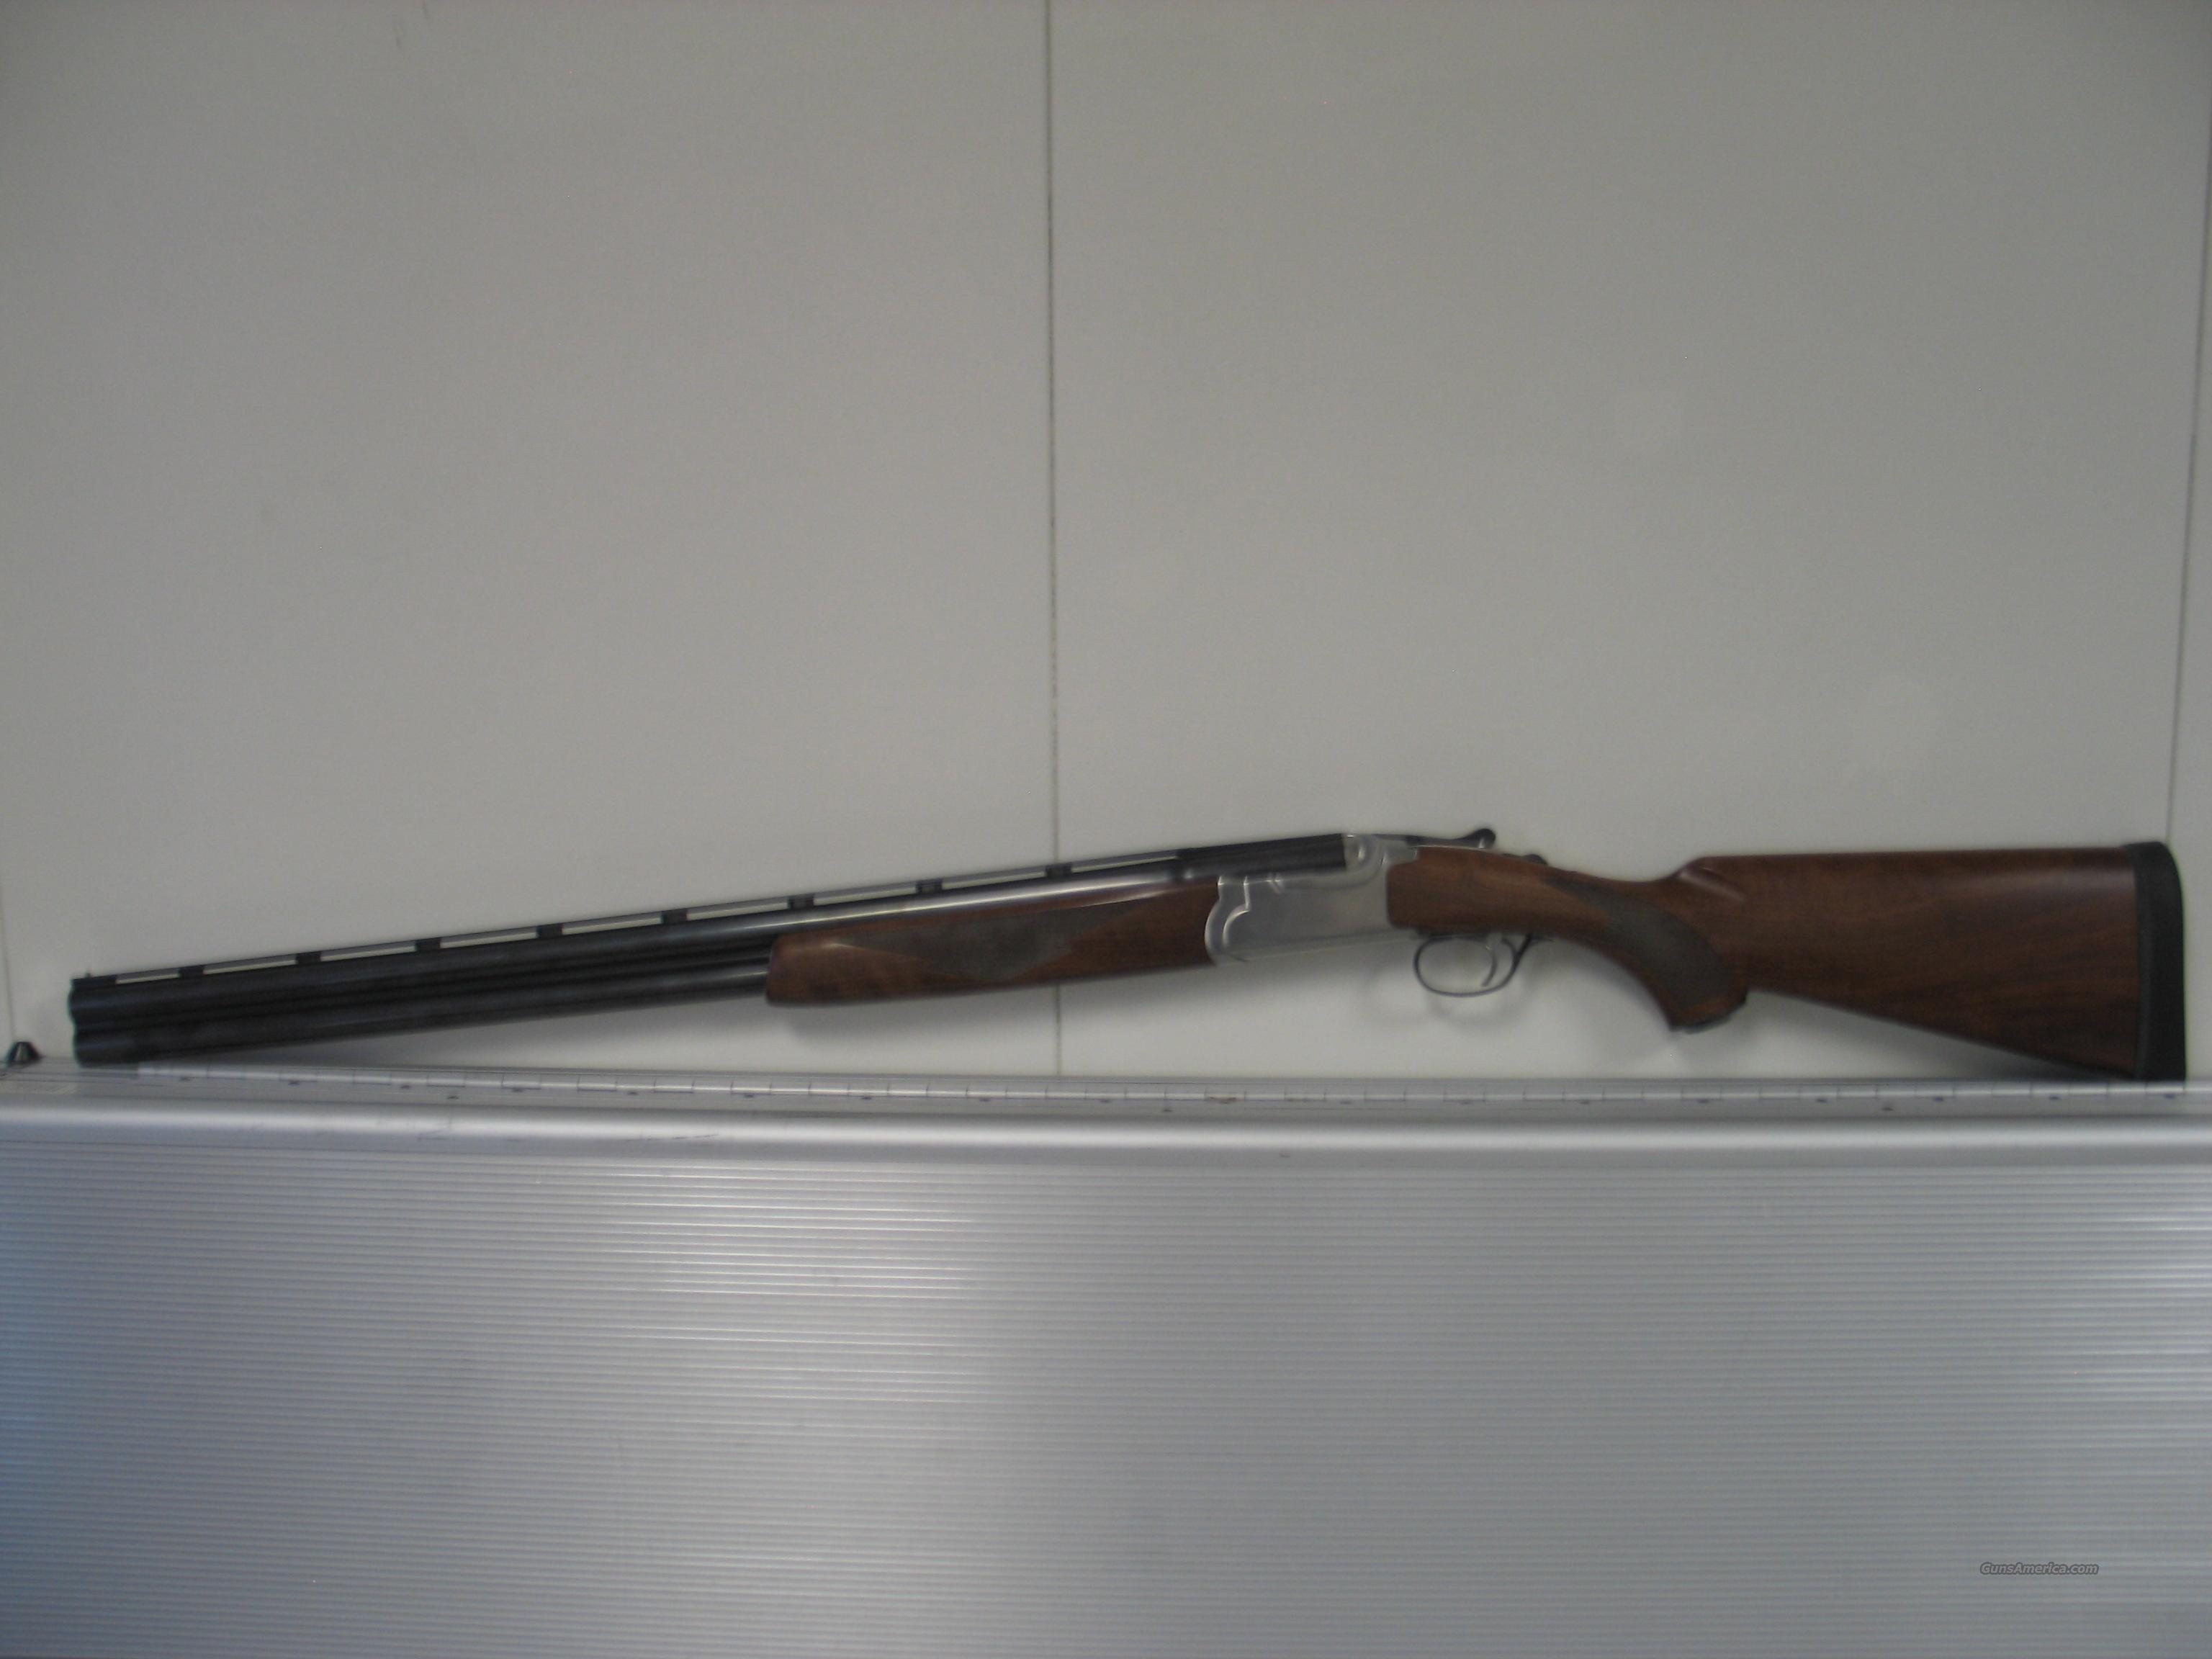 Ruger Red Label 12 Gauge Over/Under Shotgun   Guns > Shotguns > Ruger Shotguns > Hunting